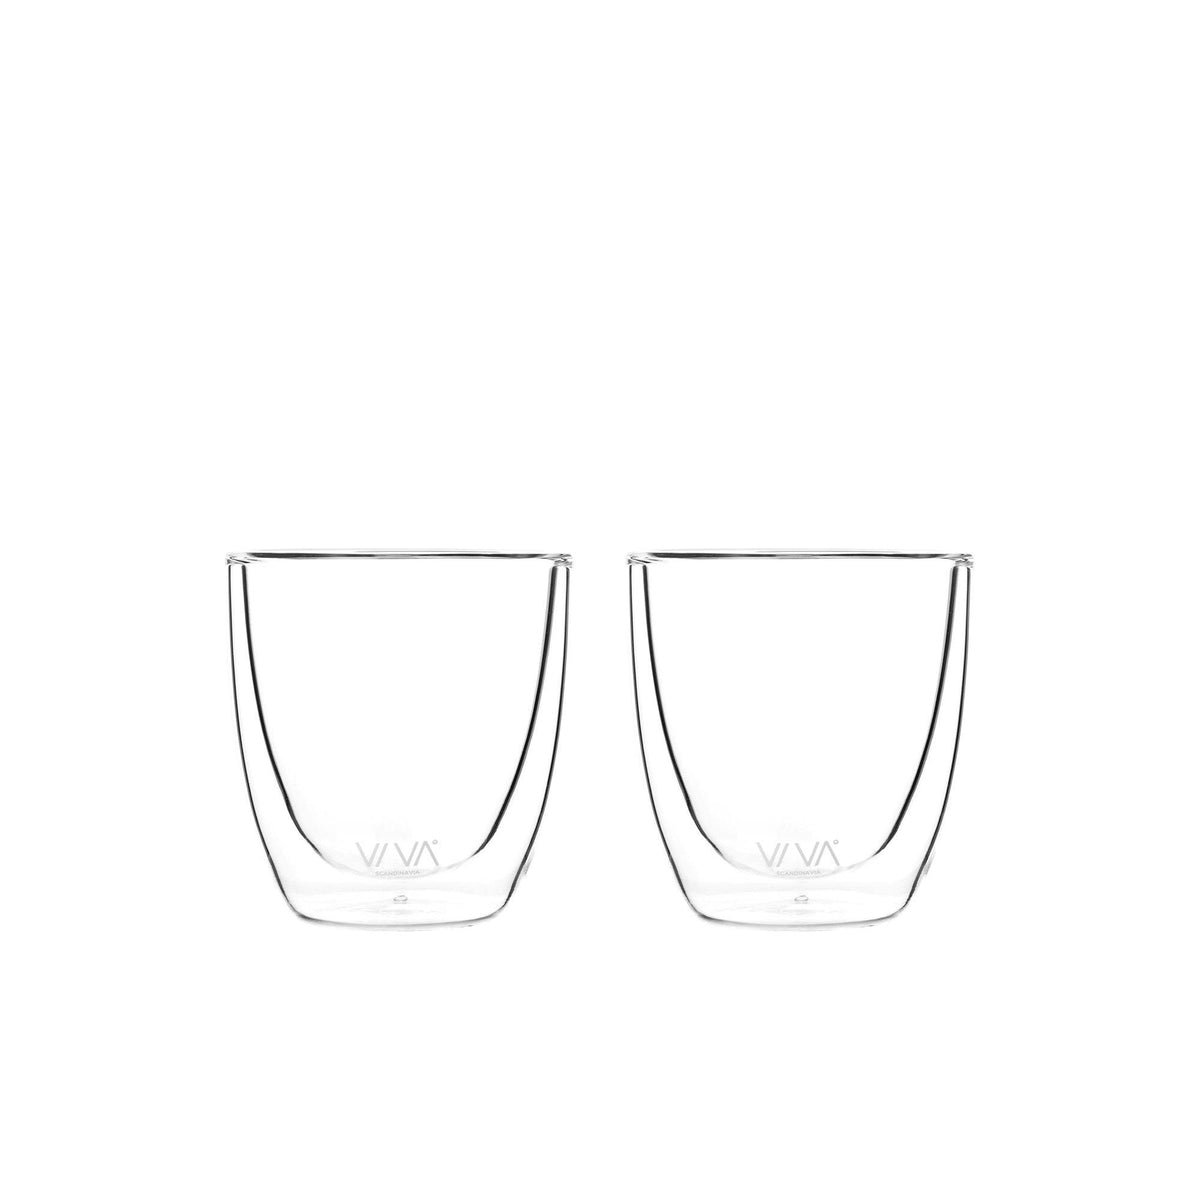 LAUREN™ Double Wall Cup - Set Of 2 (100ml)